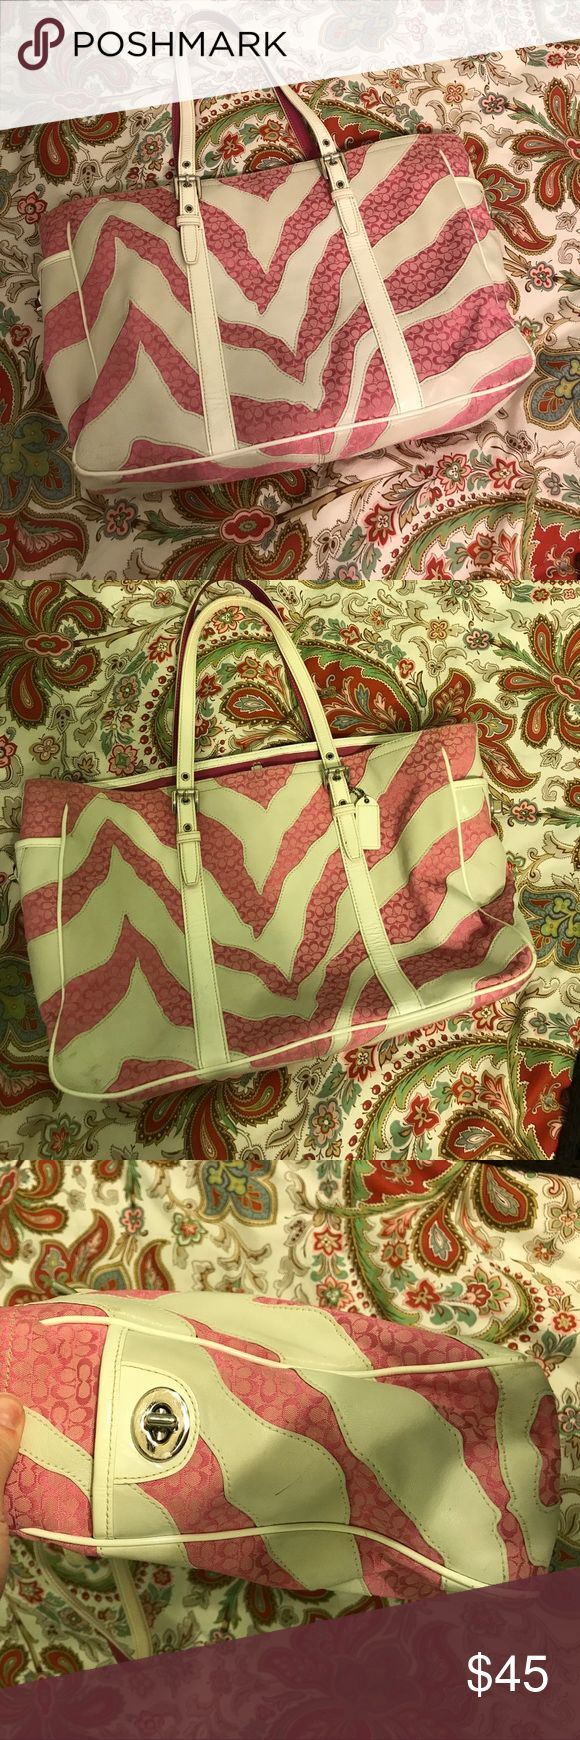 Large vintage Coach tote bag This was absolutely my favorite bag!! I used it to carry binders/laptop for college so it has been loved. Hoping someone can enjoy it as much as I did! Coach Bags Totes